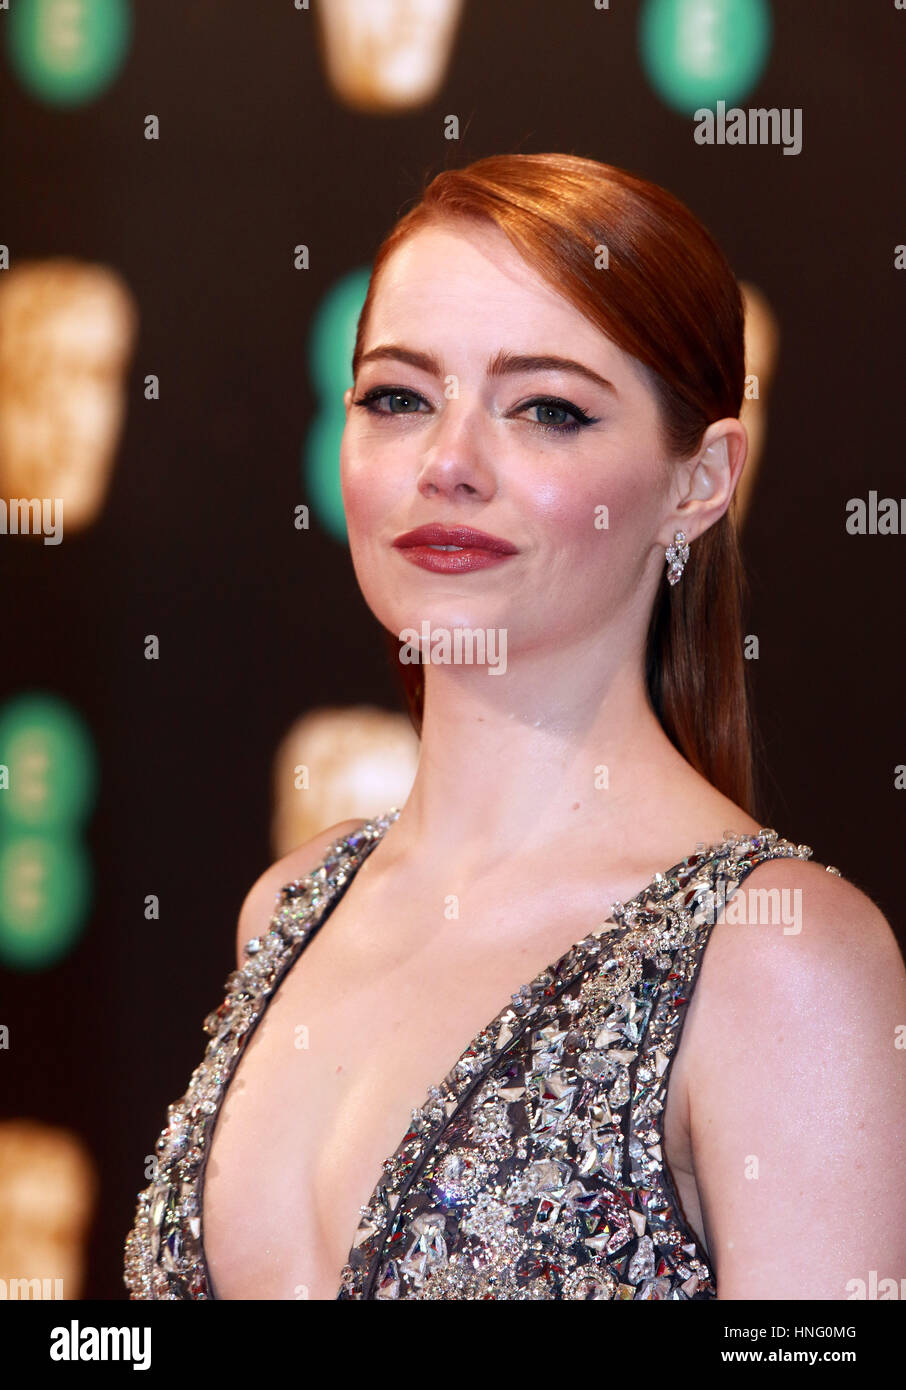 Londres, Royaume-Uni. 12 février 2017. Emma Stone à la 70e British Academy Film Awards. La BAFTA 2017 Photo Stock